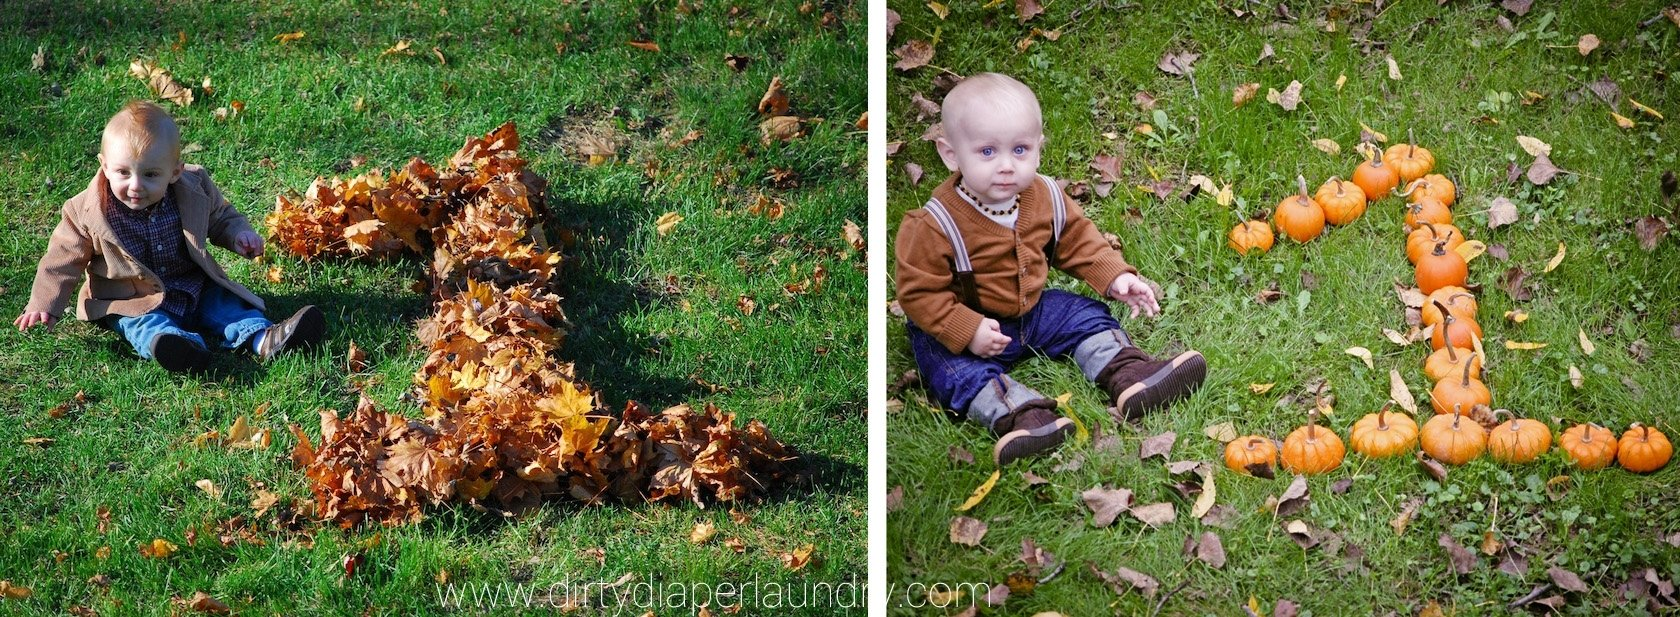 10 Great Fall Picture Ideas For Babies creative photo ideas for fall babies dirty diaper laundry 2020